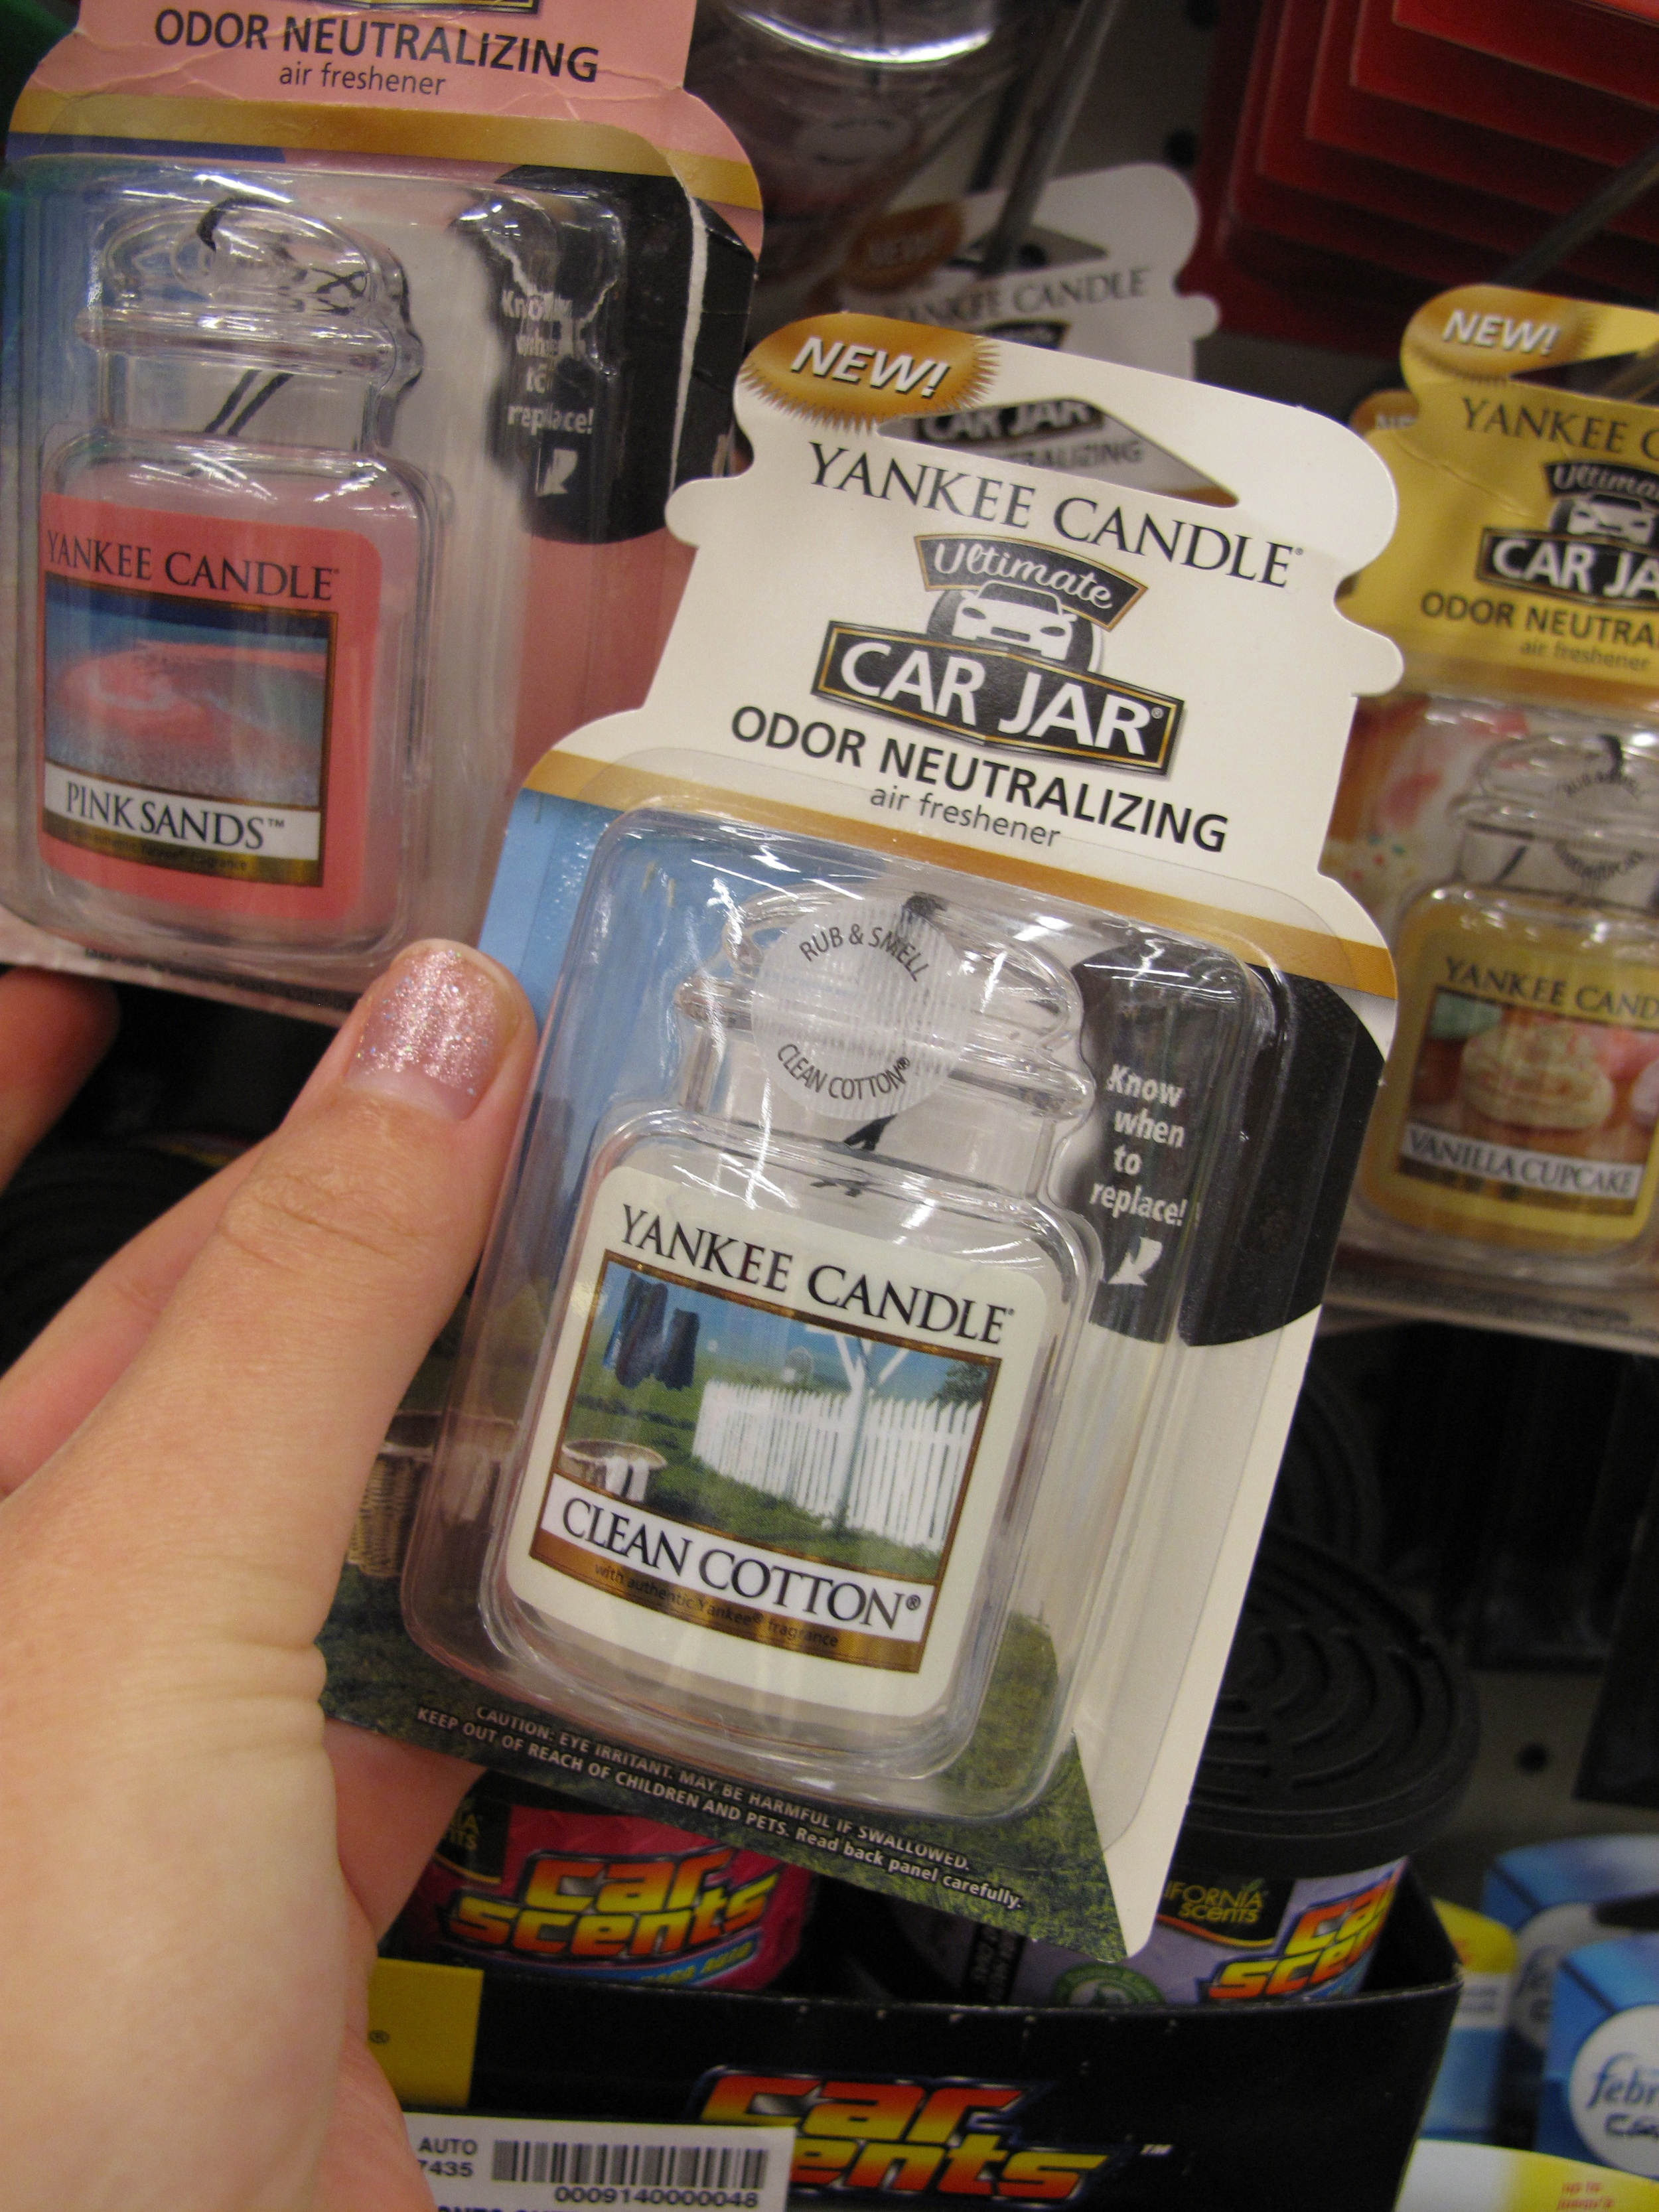 Clean cotton car smell - Yankee Candle